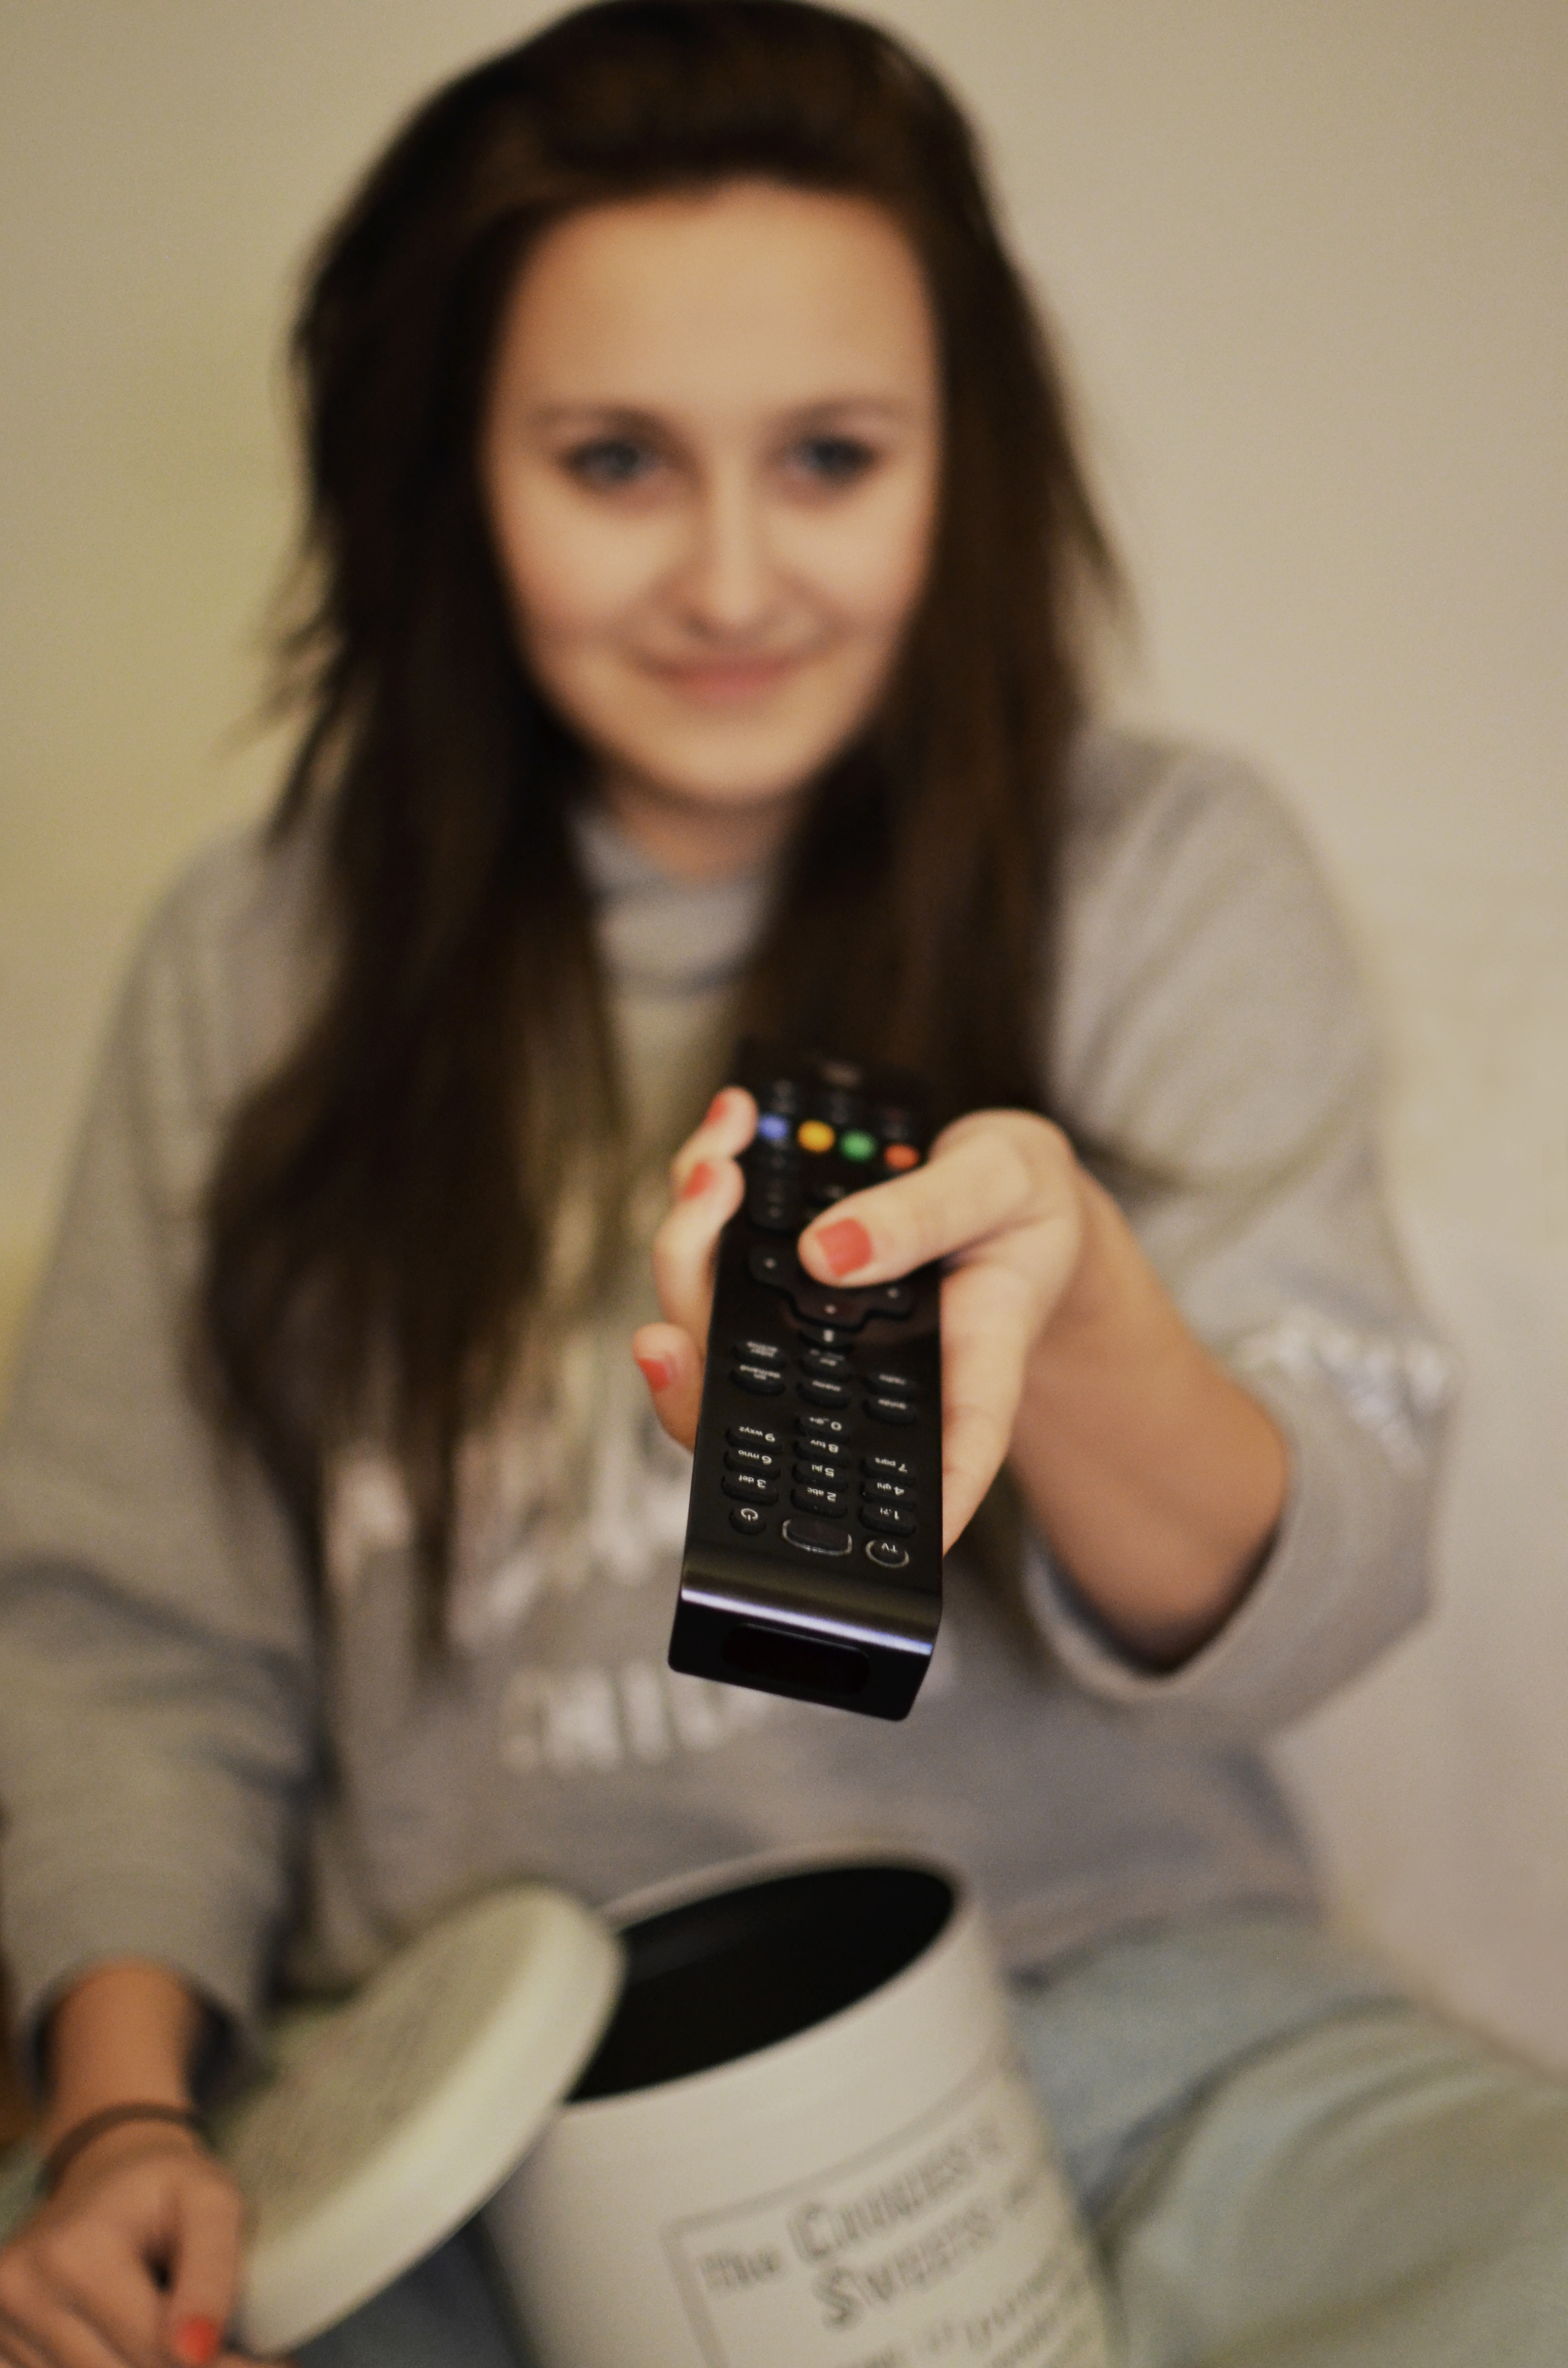 TV_woman-girl-remote